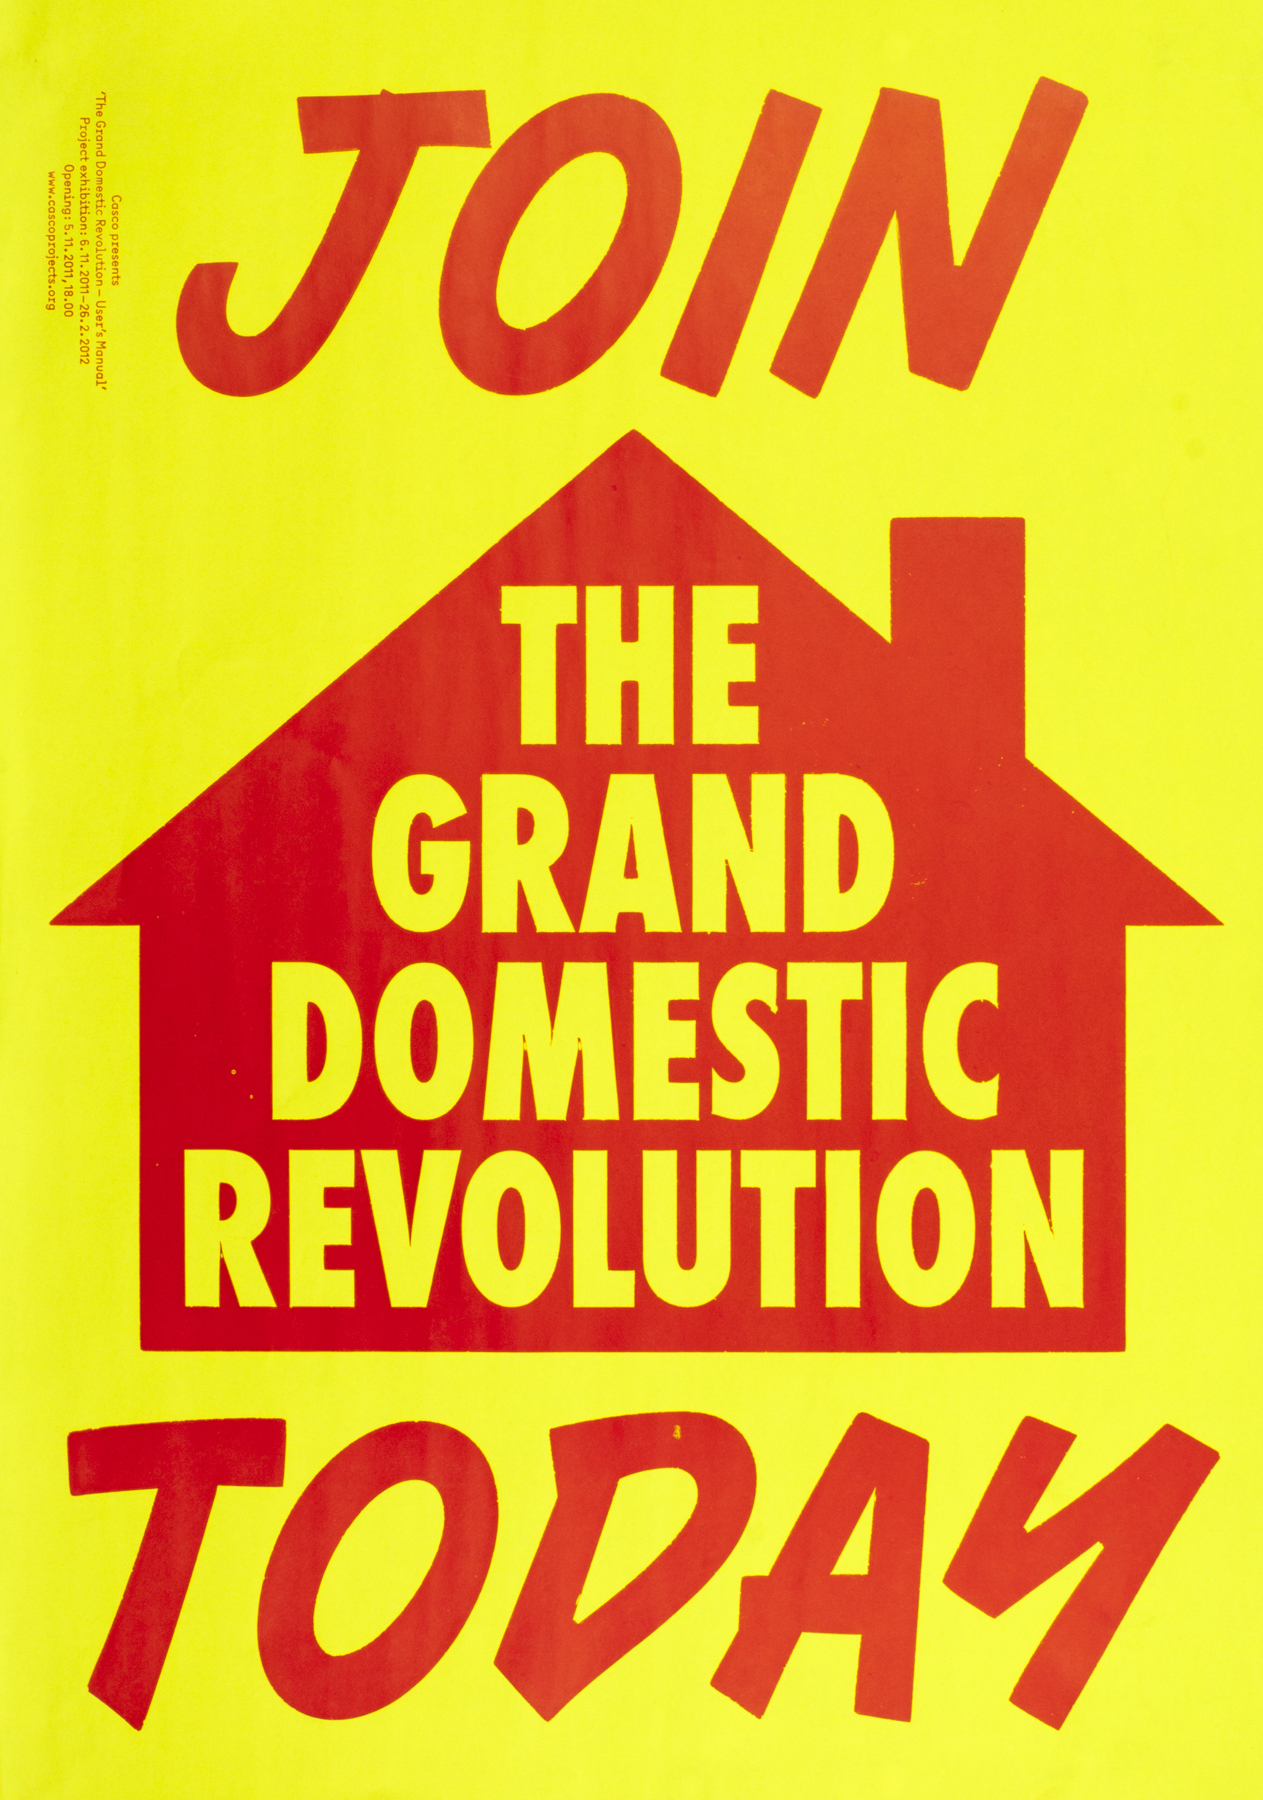 grand domestic revolution